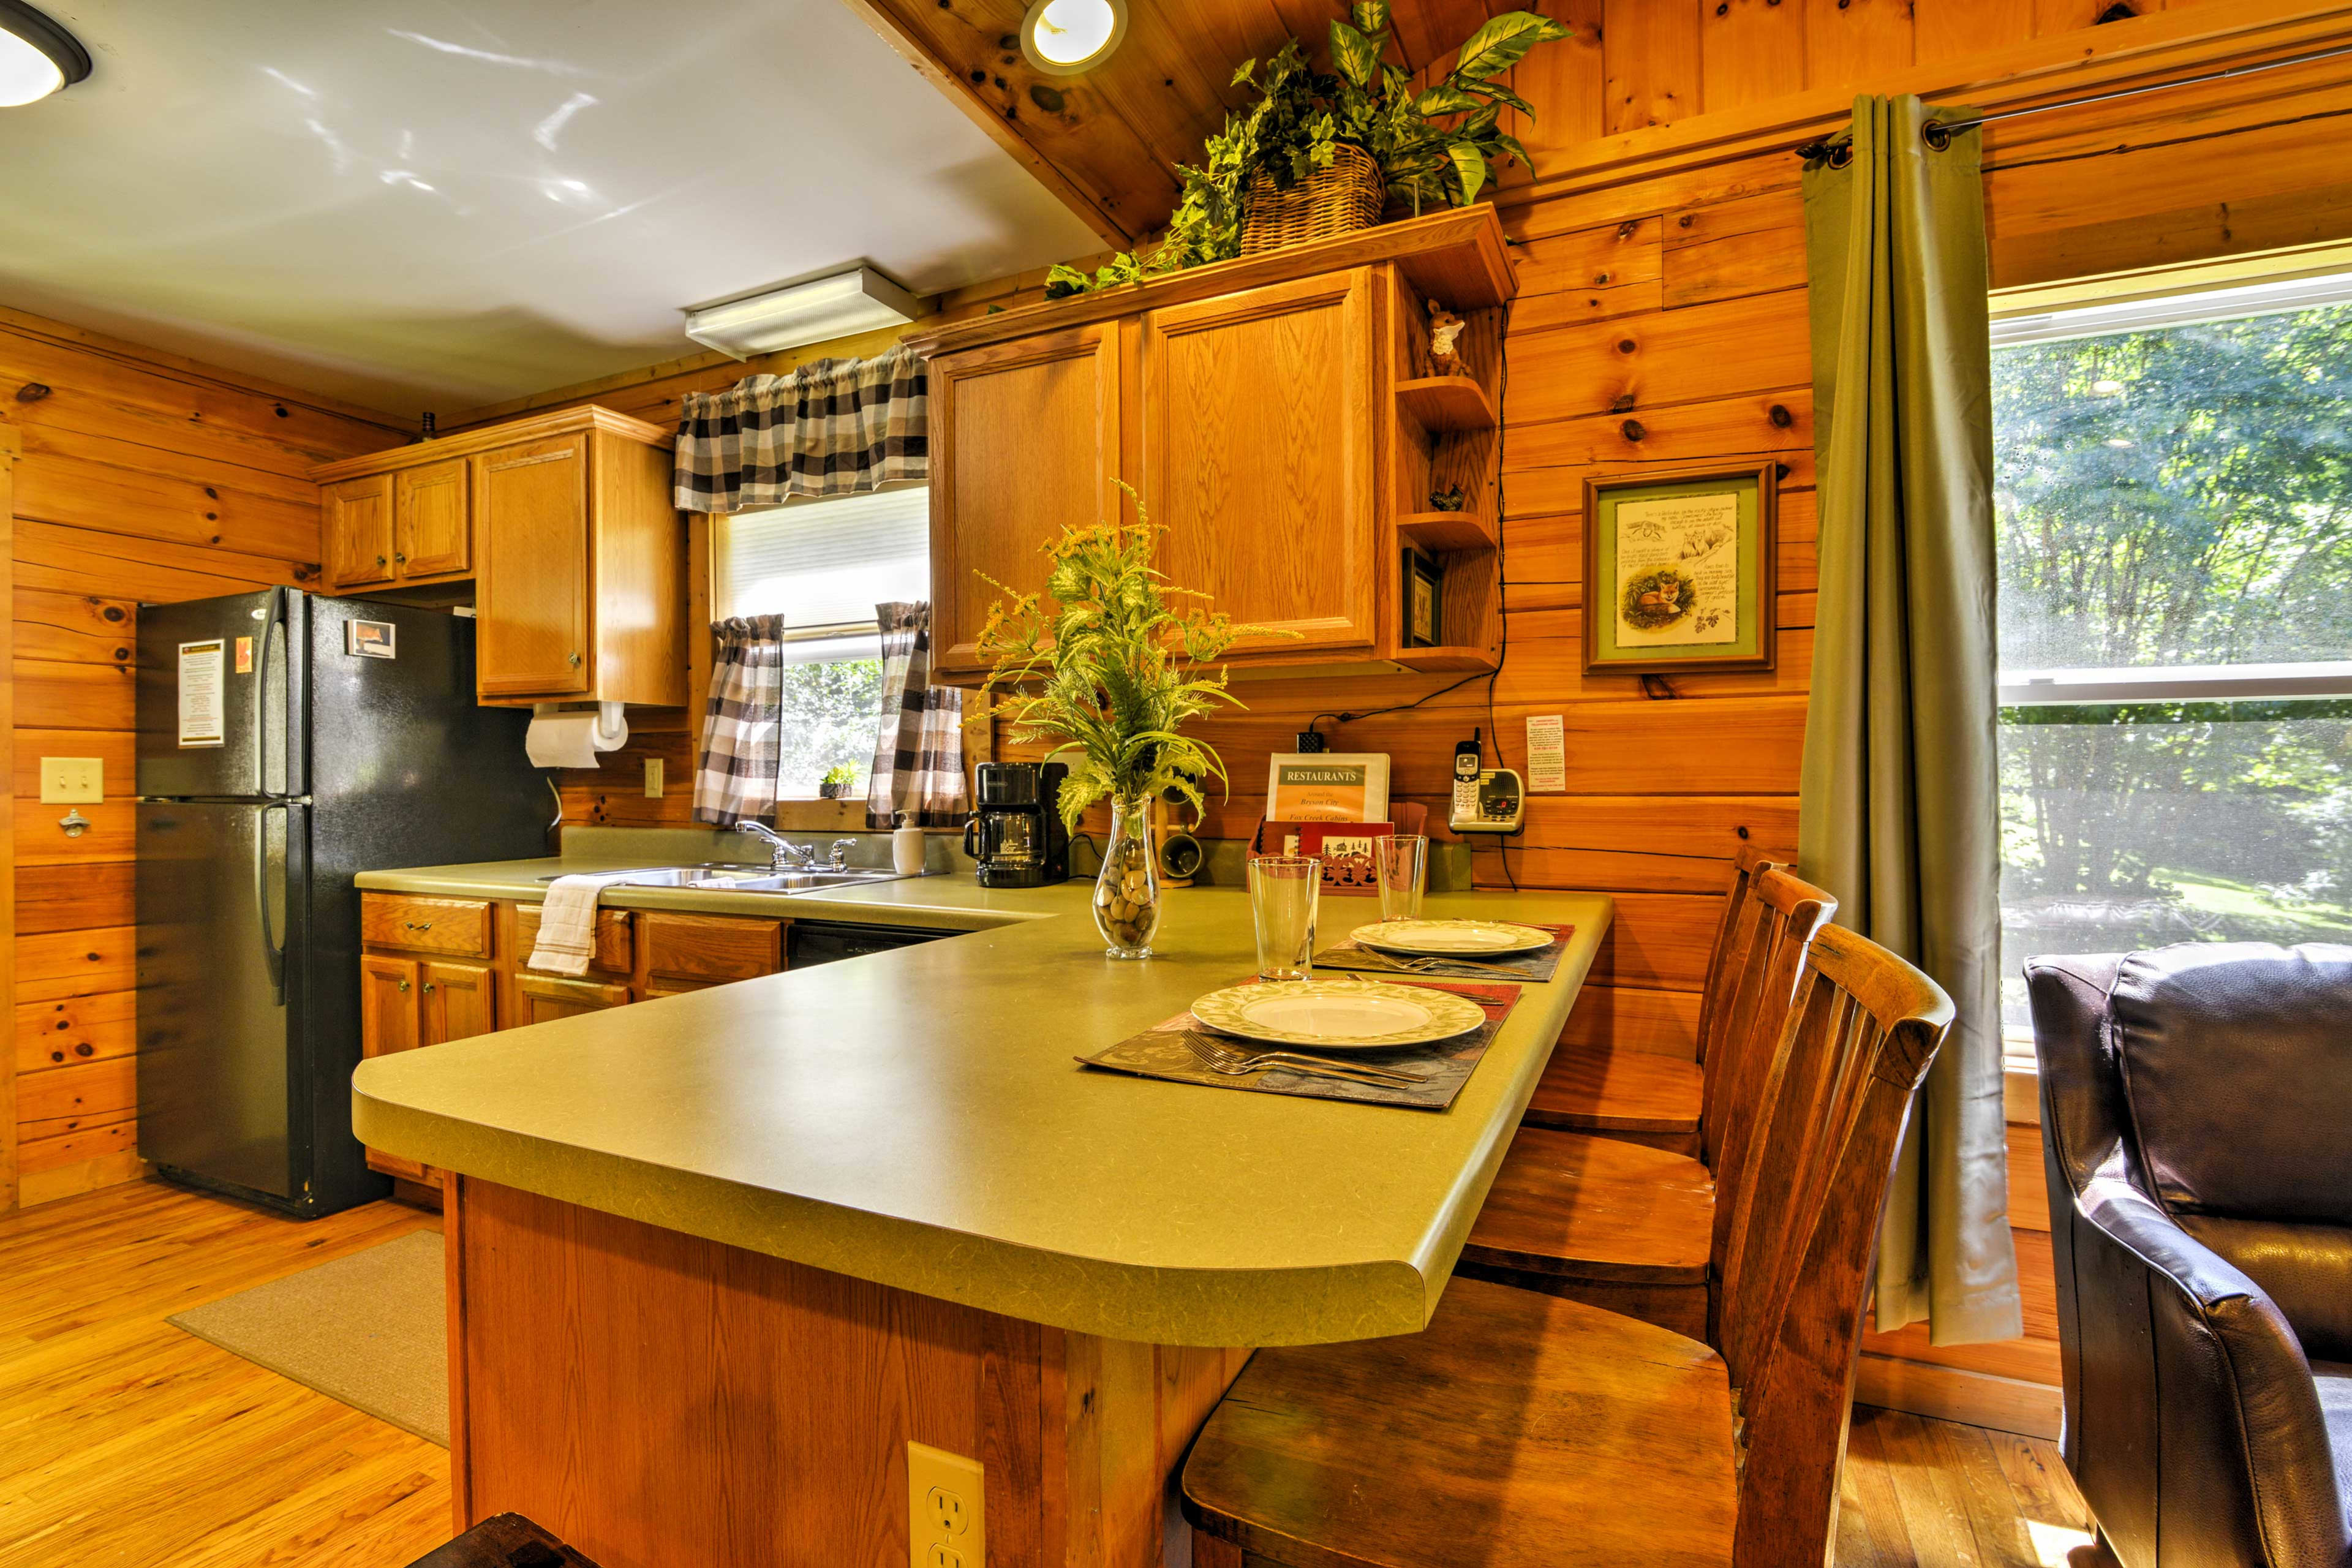 Pull up a chair to the kitchen bar to enjoy a snack!